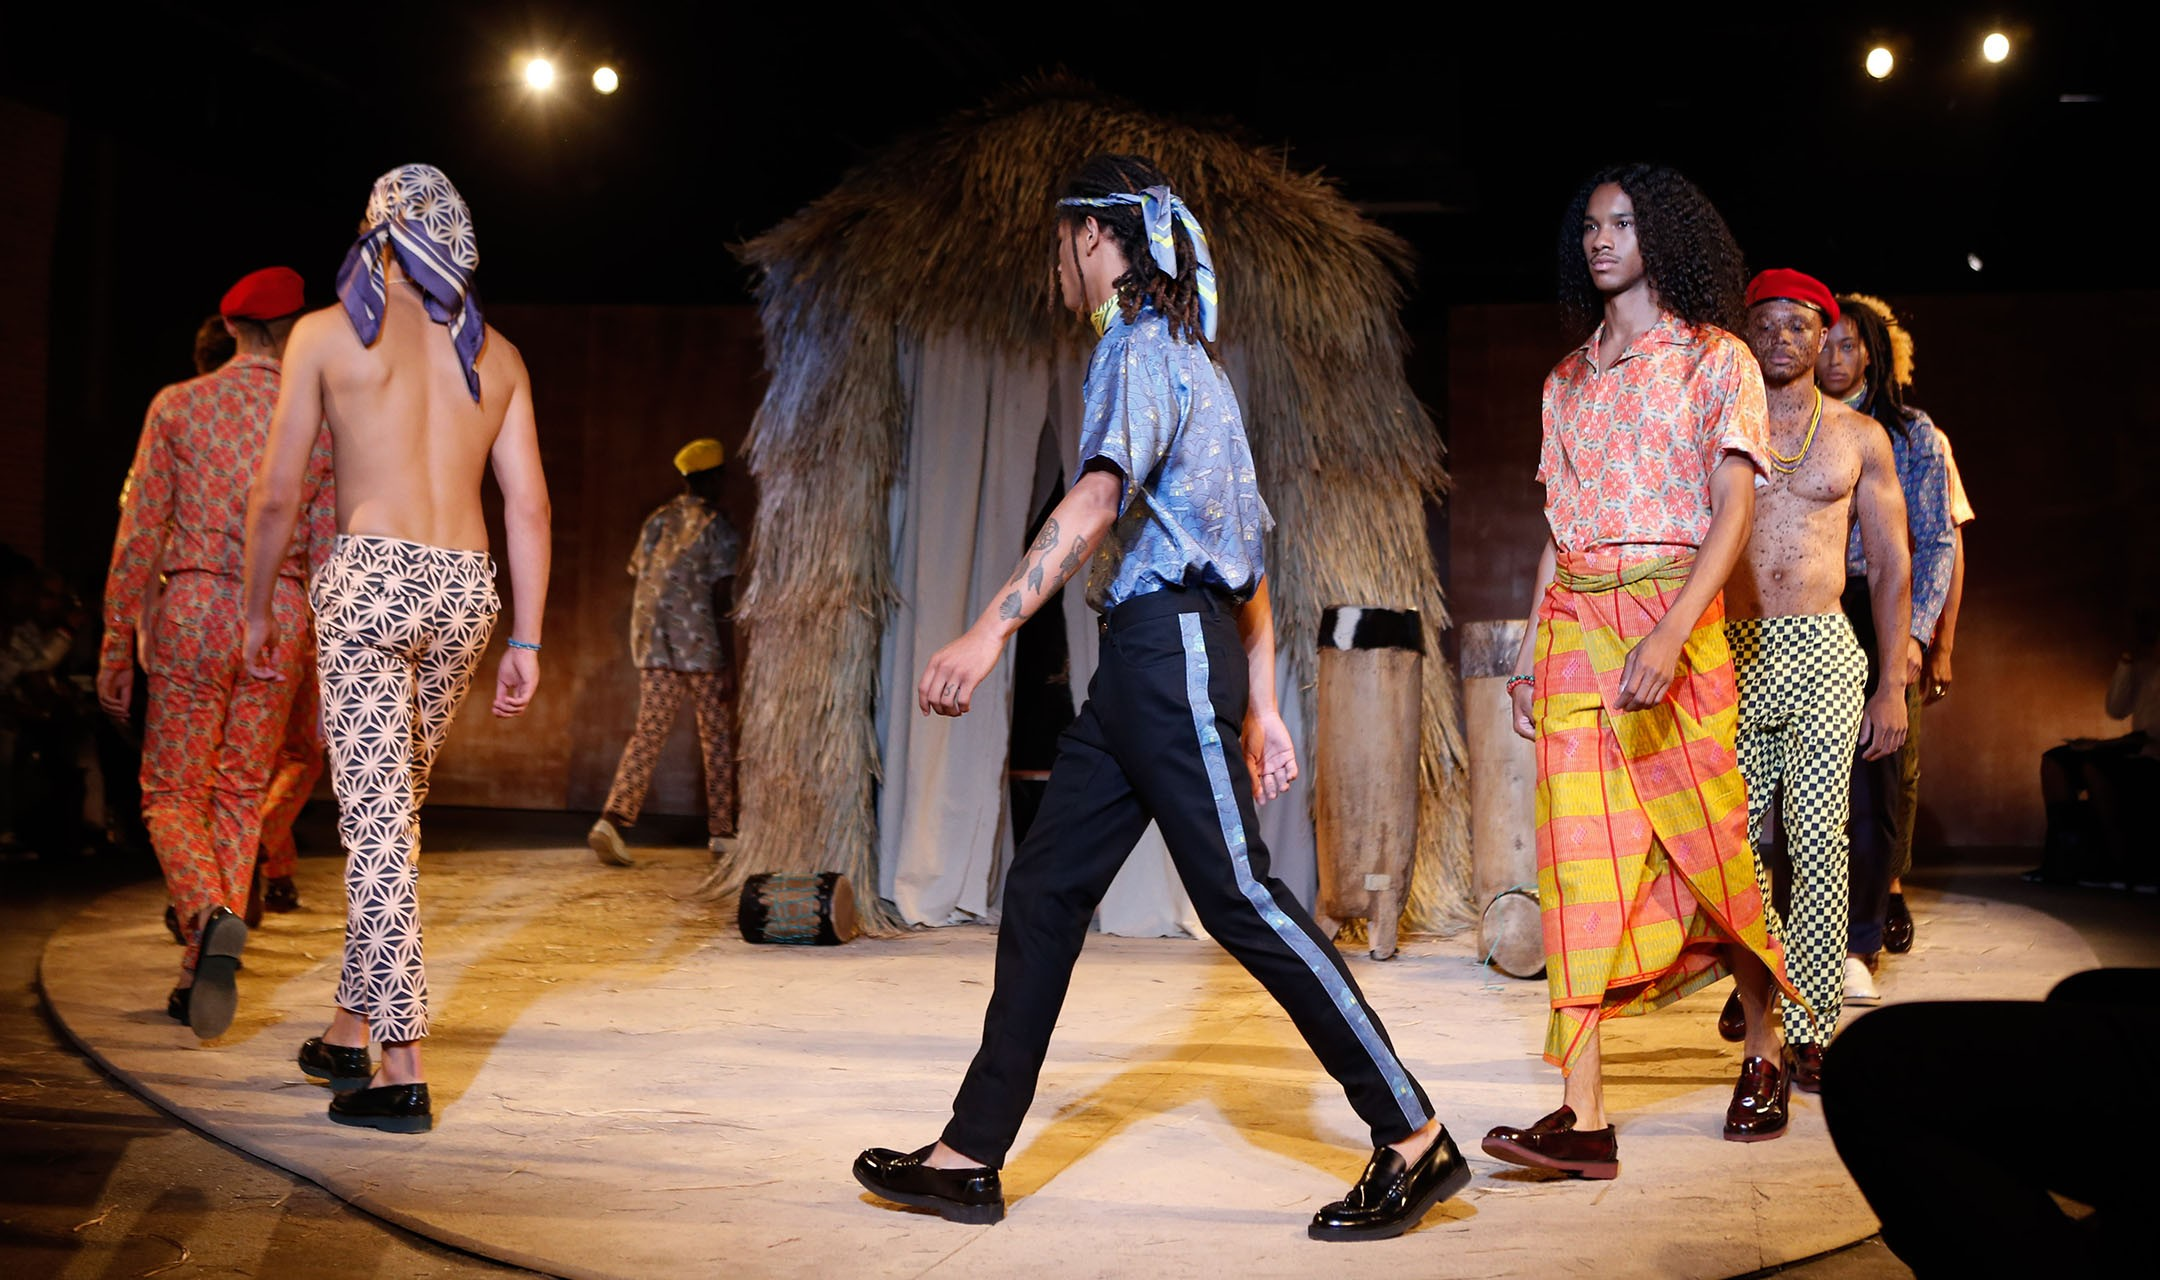 Forbes : Gabon's 'Heritage' On Display At The NYFW